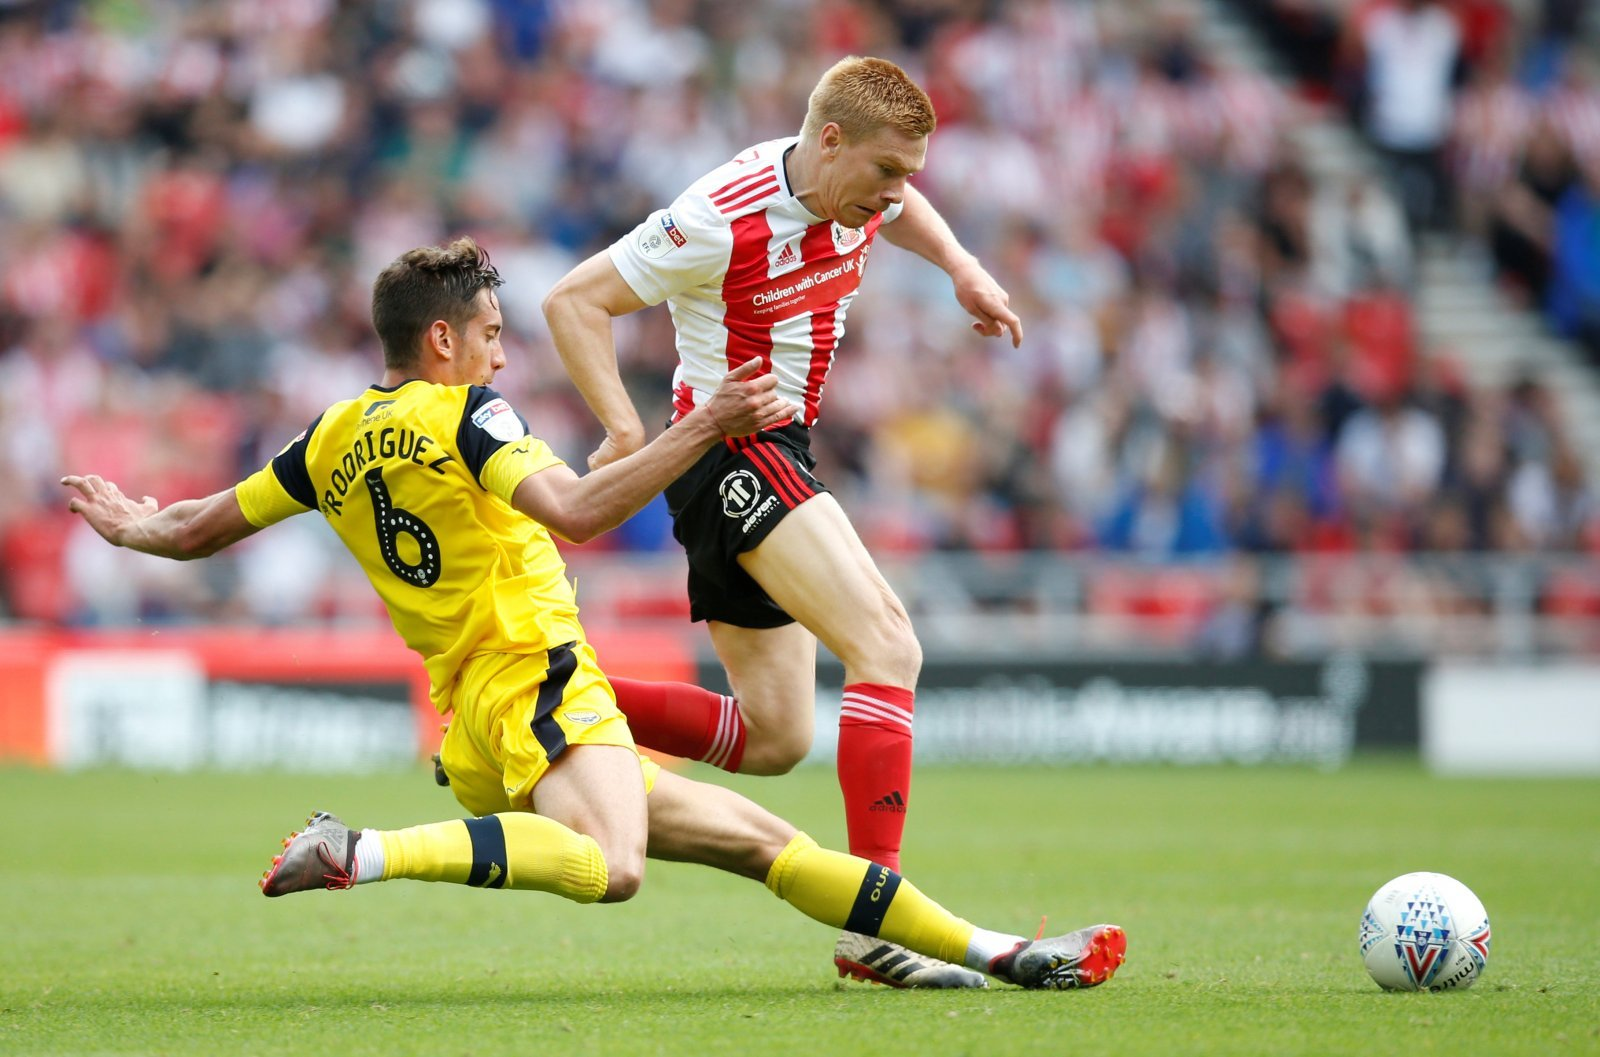 Sunderland: These fans are beginning to give up on Duncan Watmore